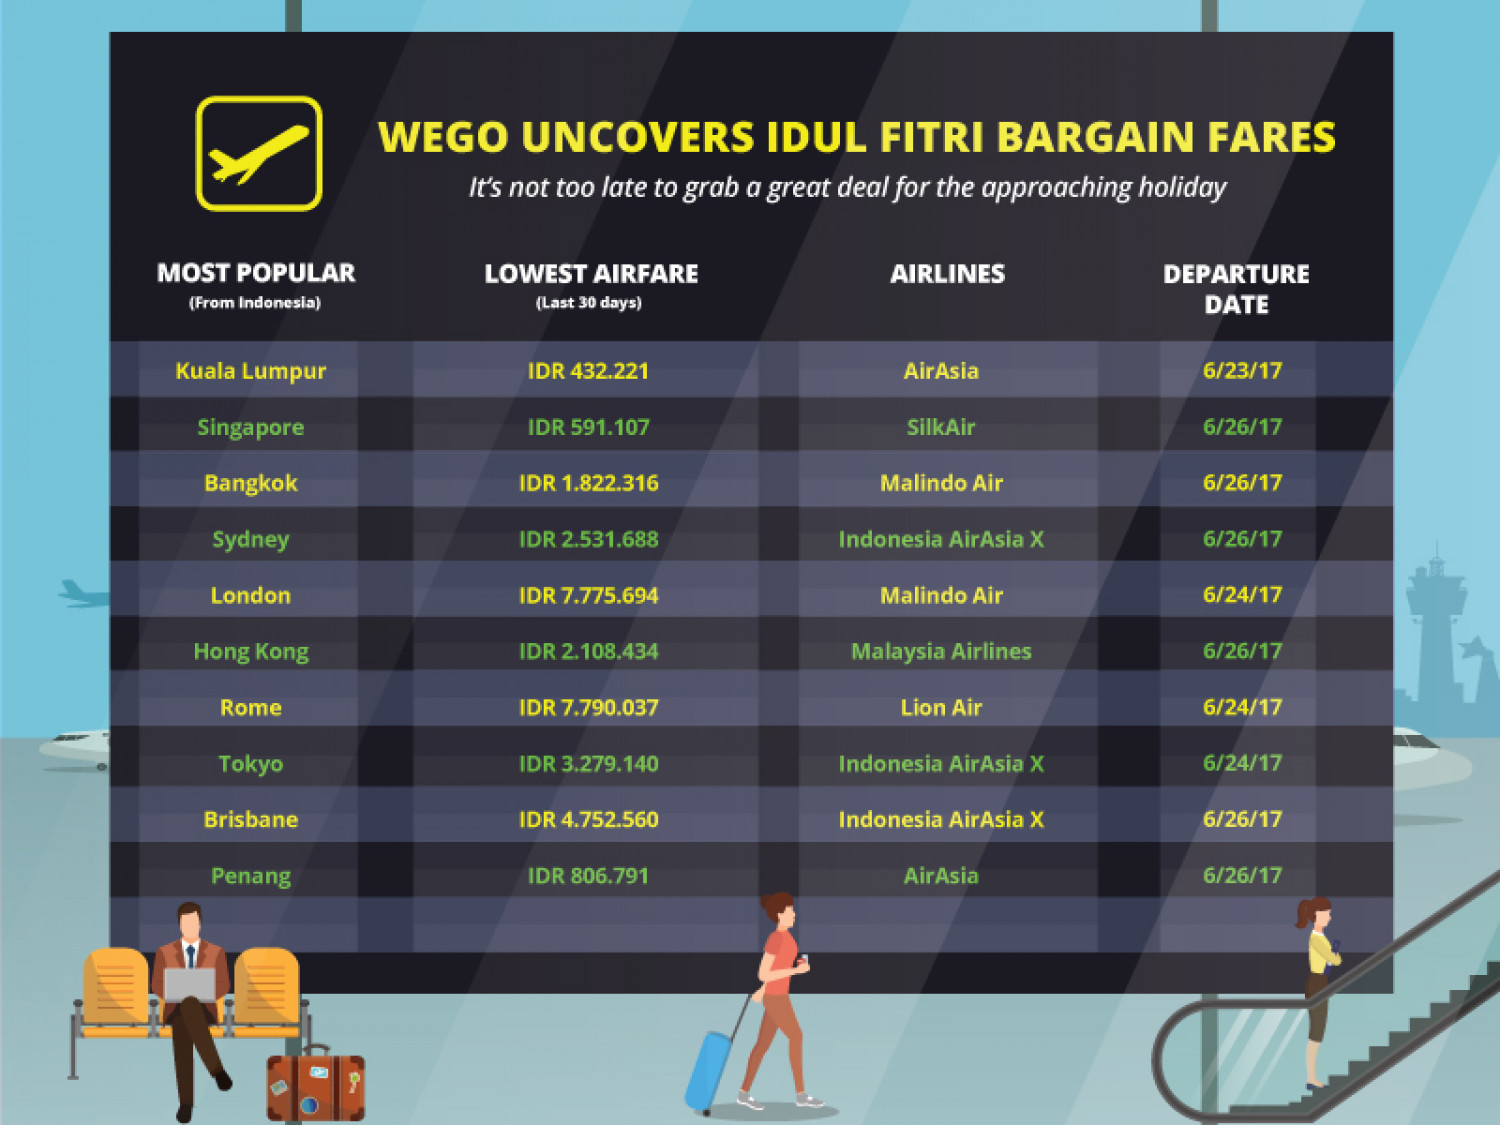 Wego uncovers Idul Fitri bargain airfares (Indonesia) Infographic